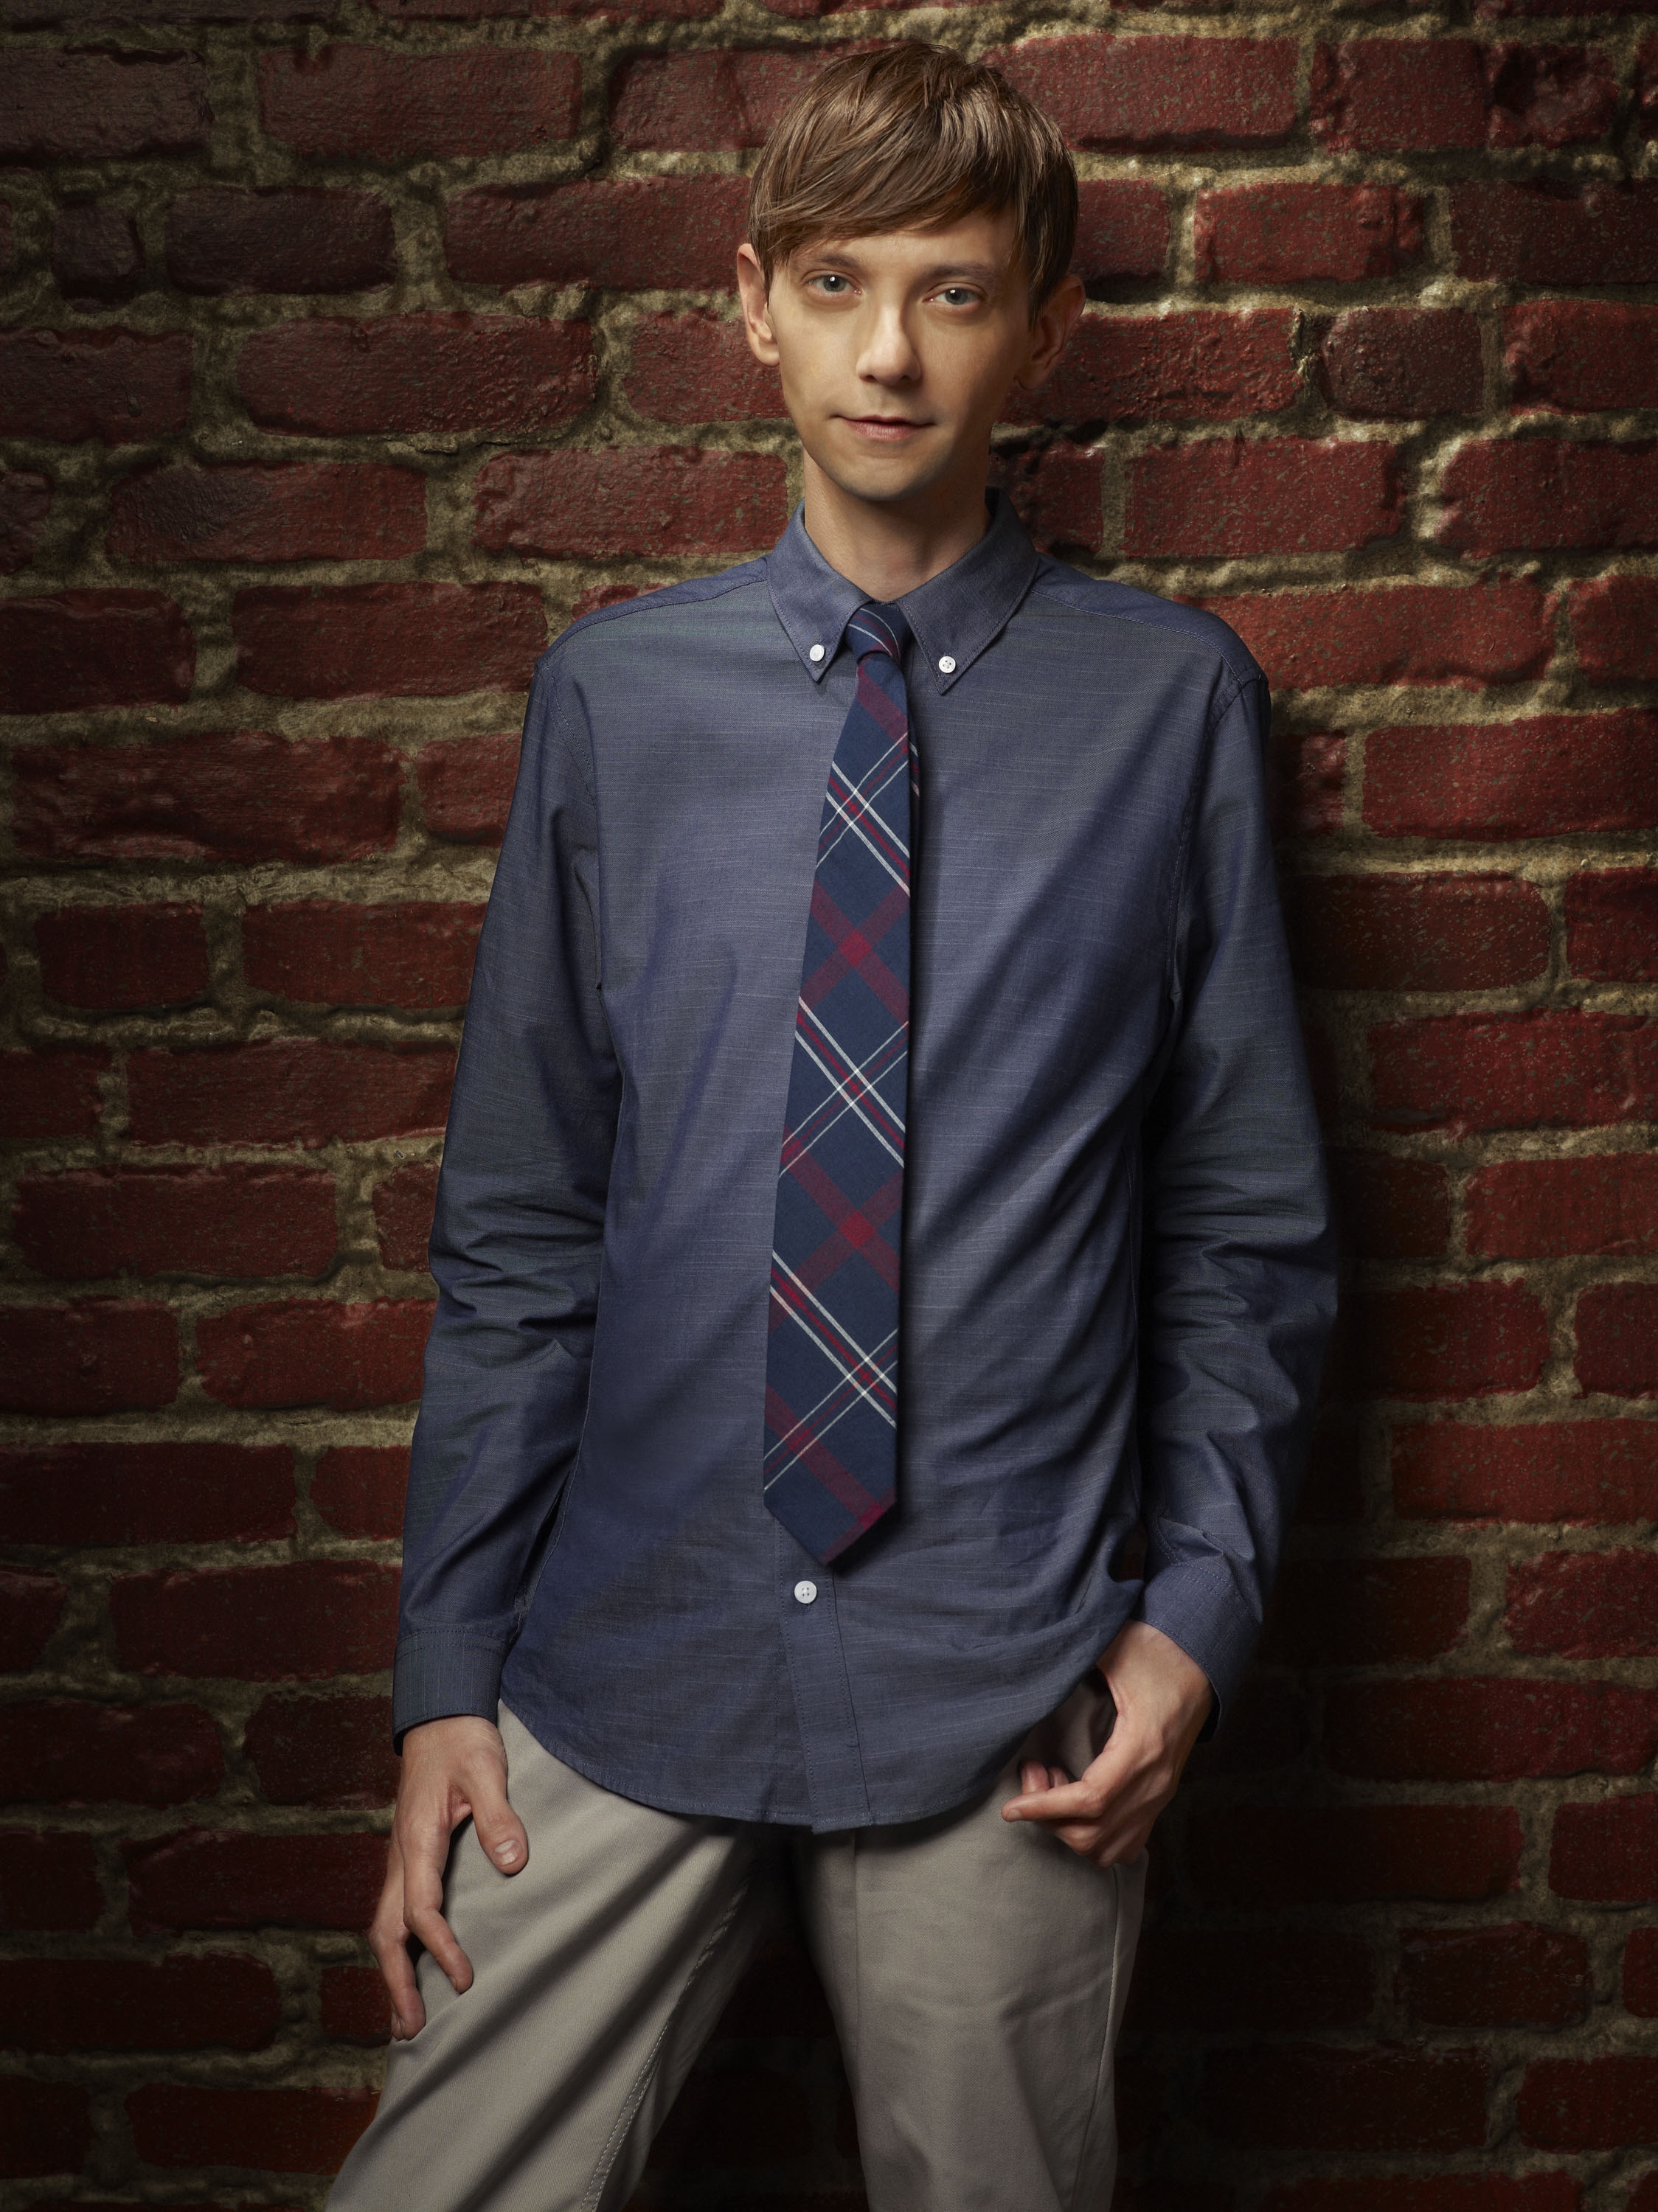 DJ Qualls photo 6 of 6 pics, wallpaper - photo #366076 ...